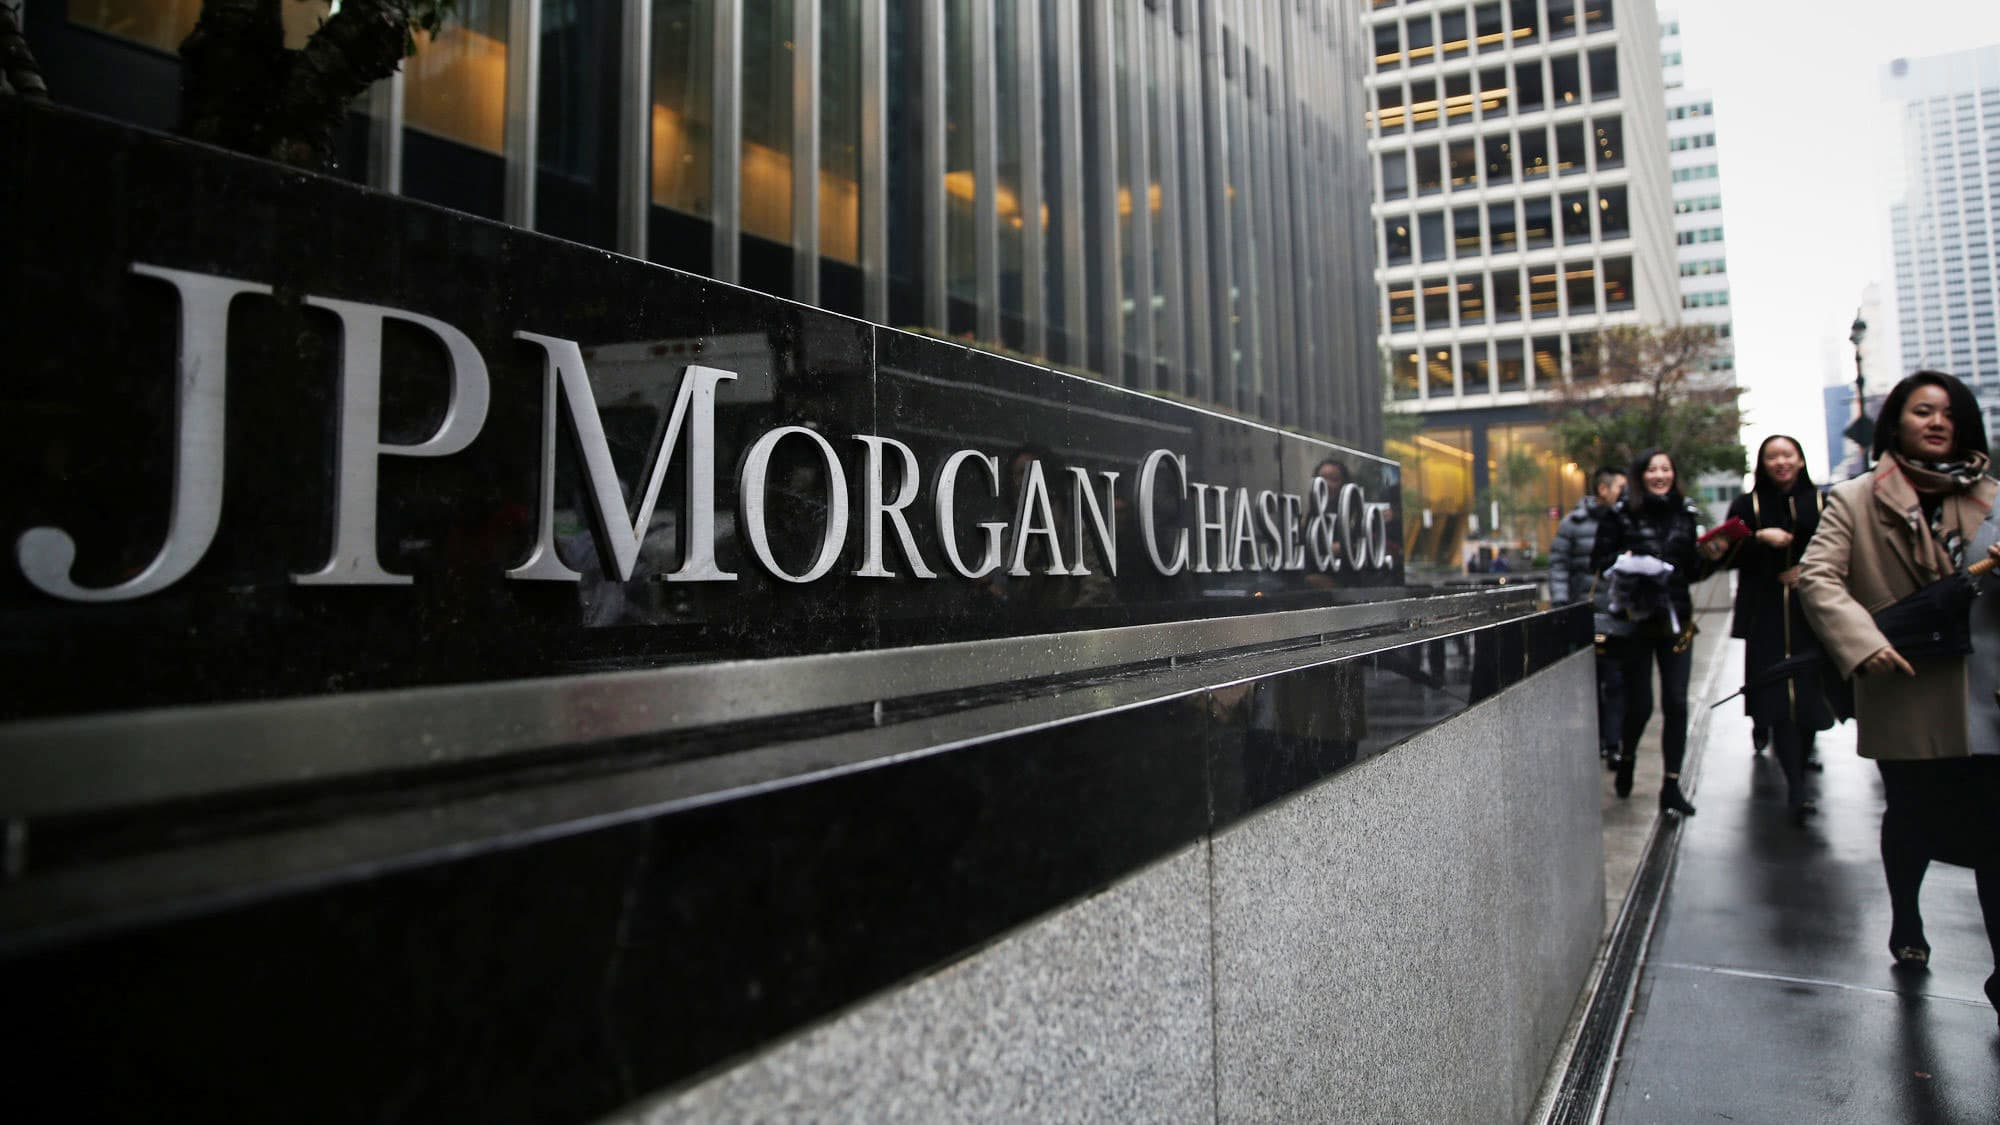 U S  seeks halt in lawsuit accusing JP Morgan of rigging metals market